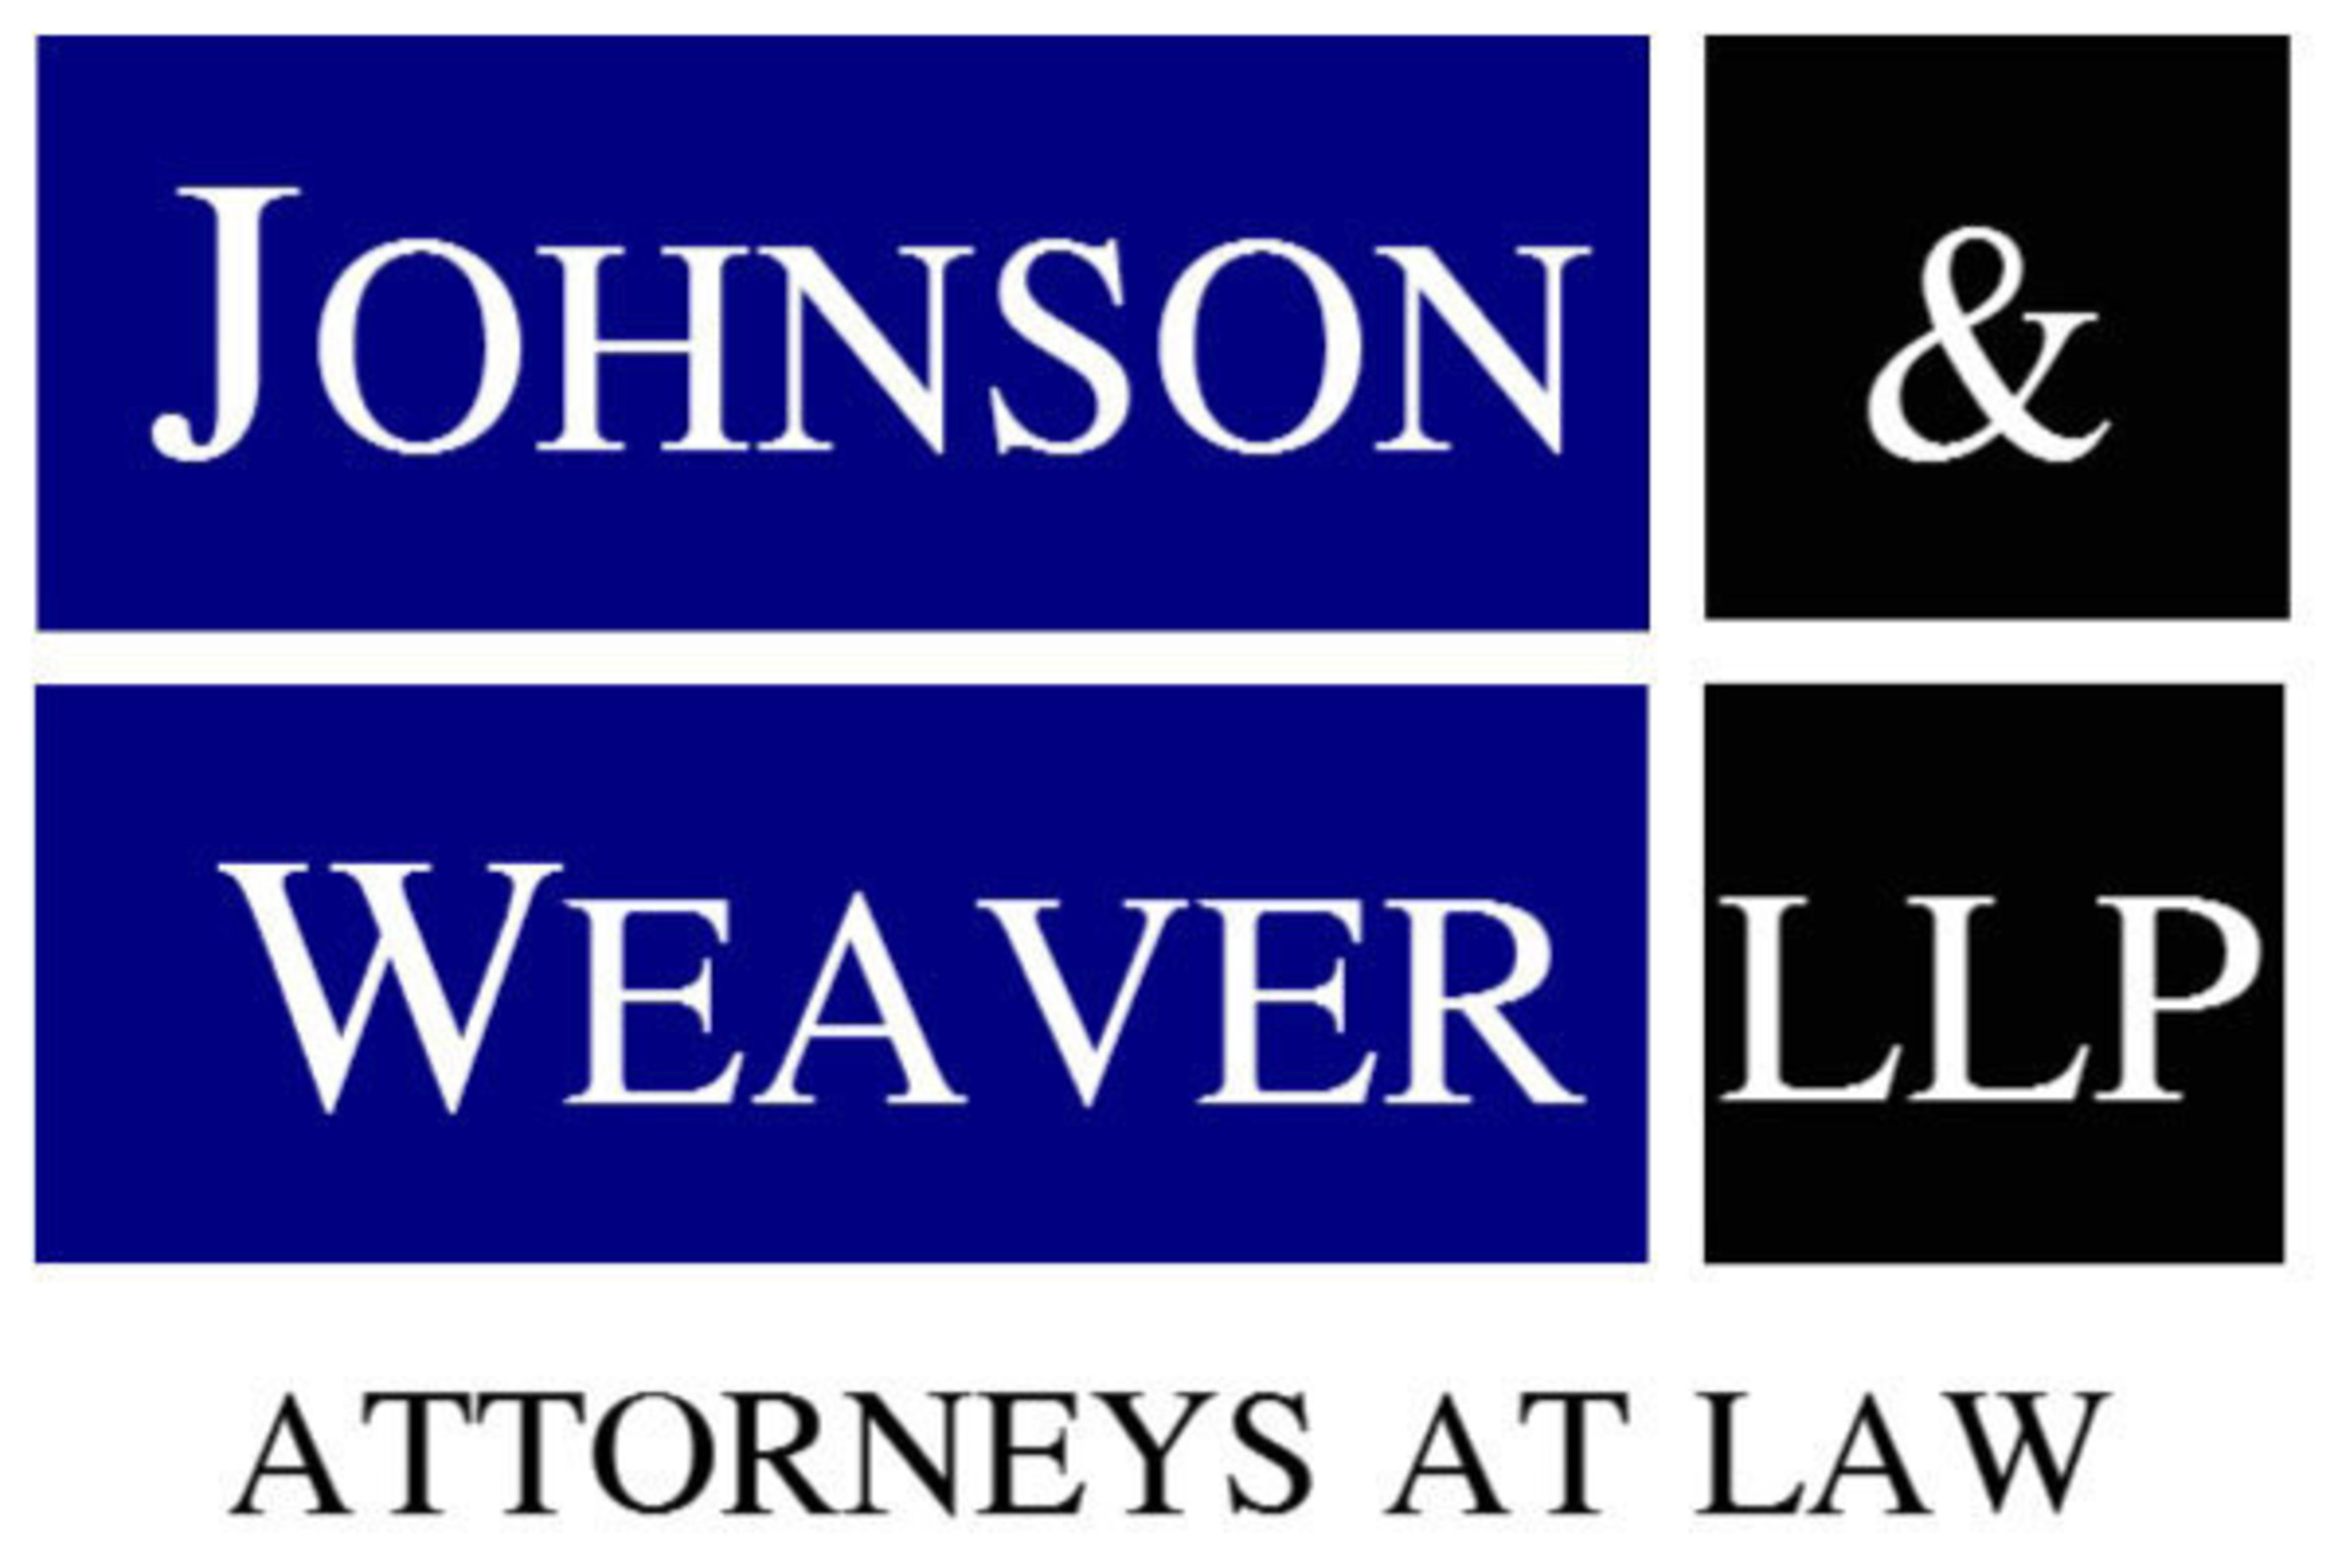 Johnson & Weaver LLP (PRNewsFoto/Johnson & Weaver LLP)